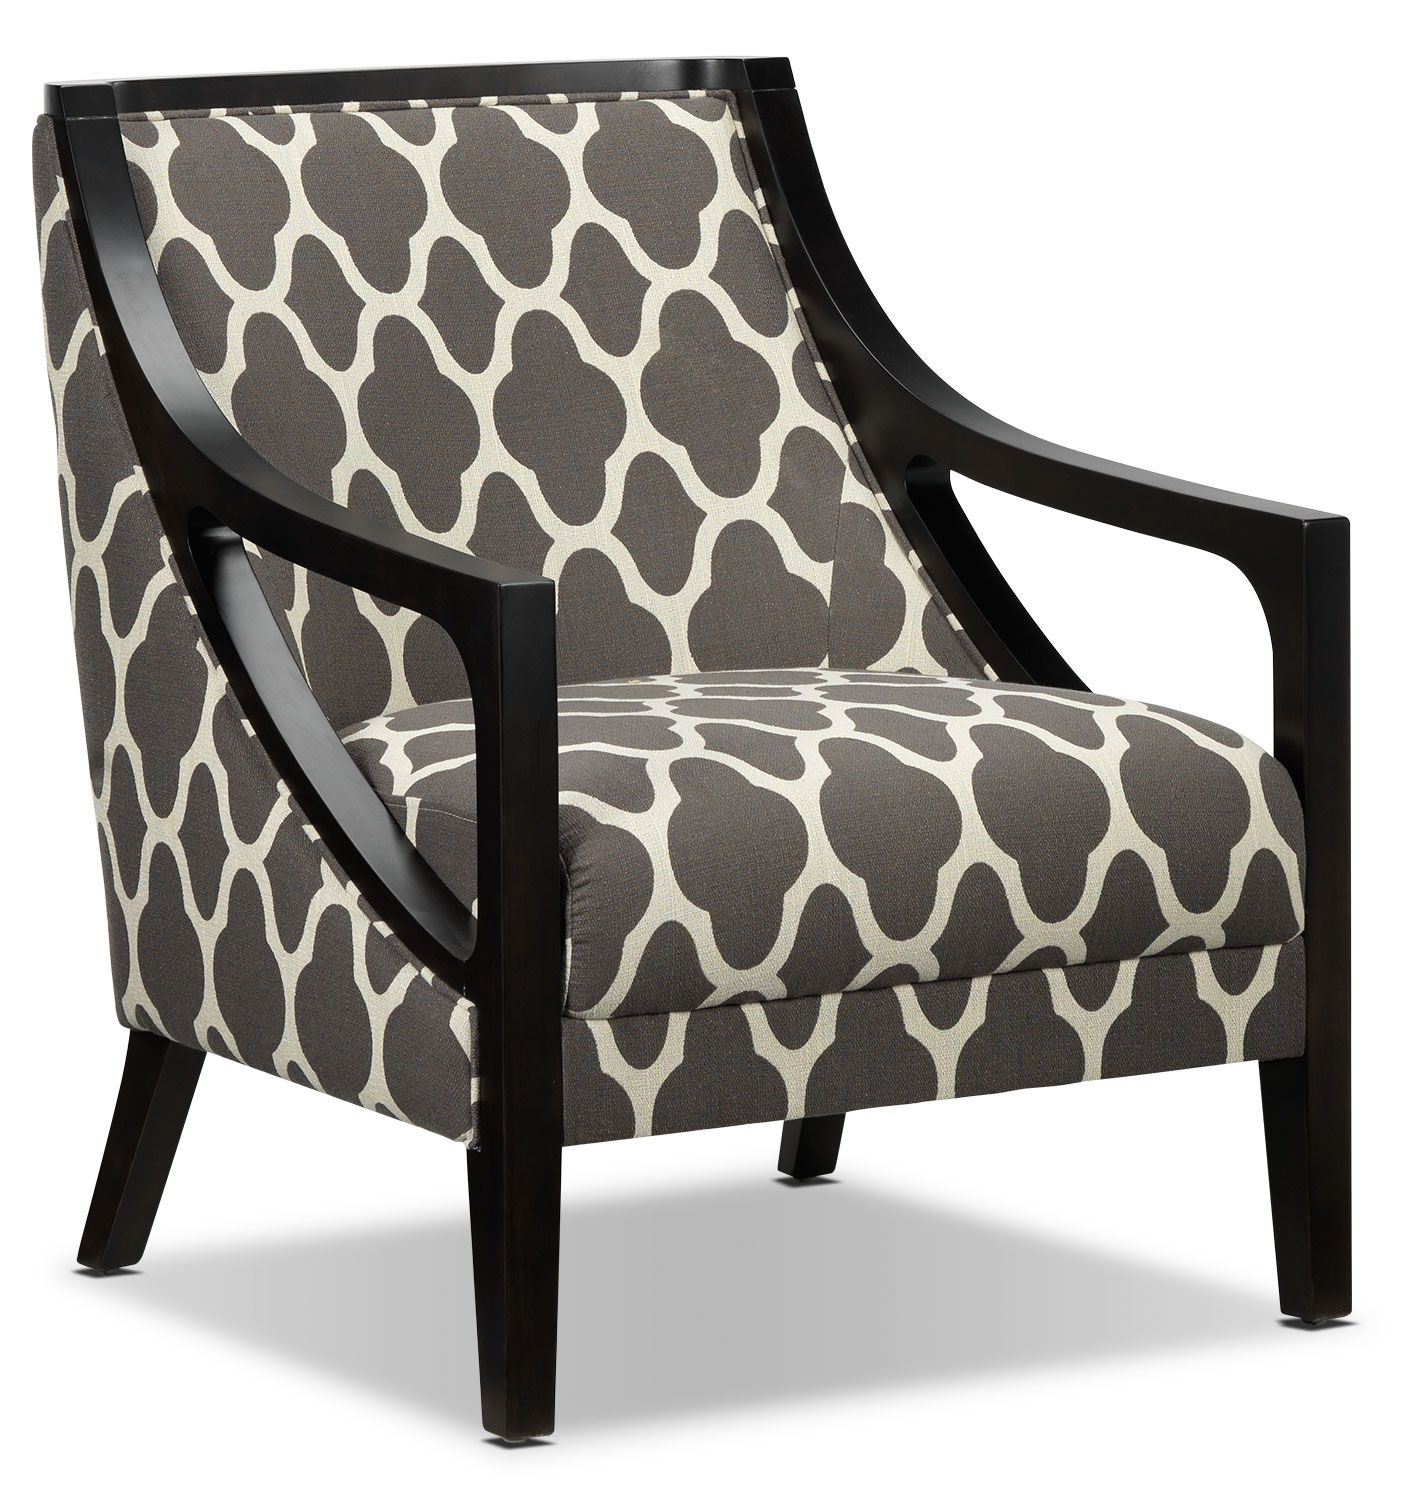 Pattern of Elegance The Minera accent chair s thoughtful design